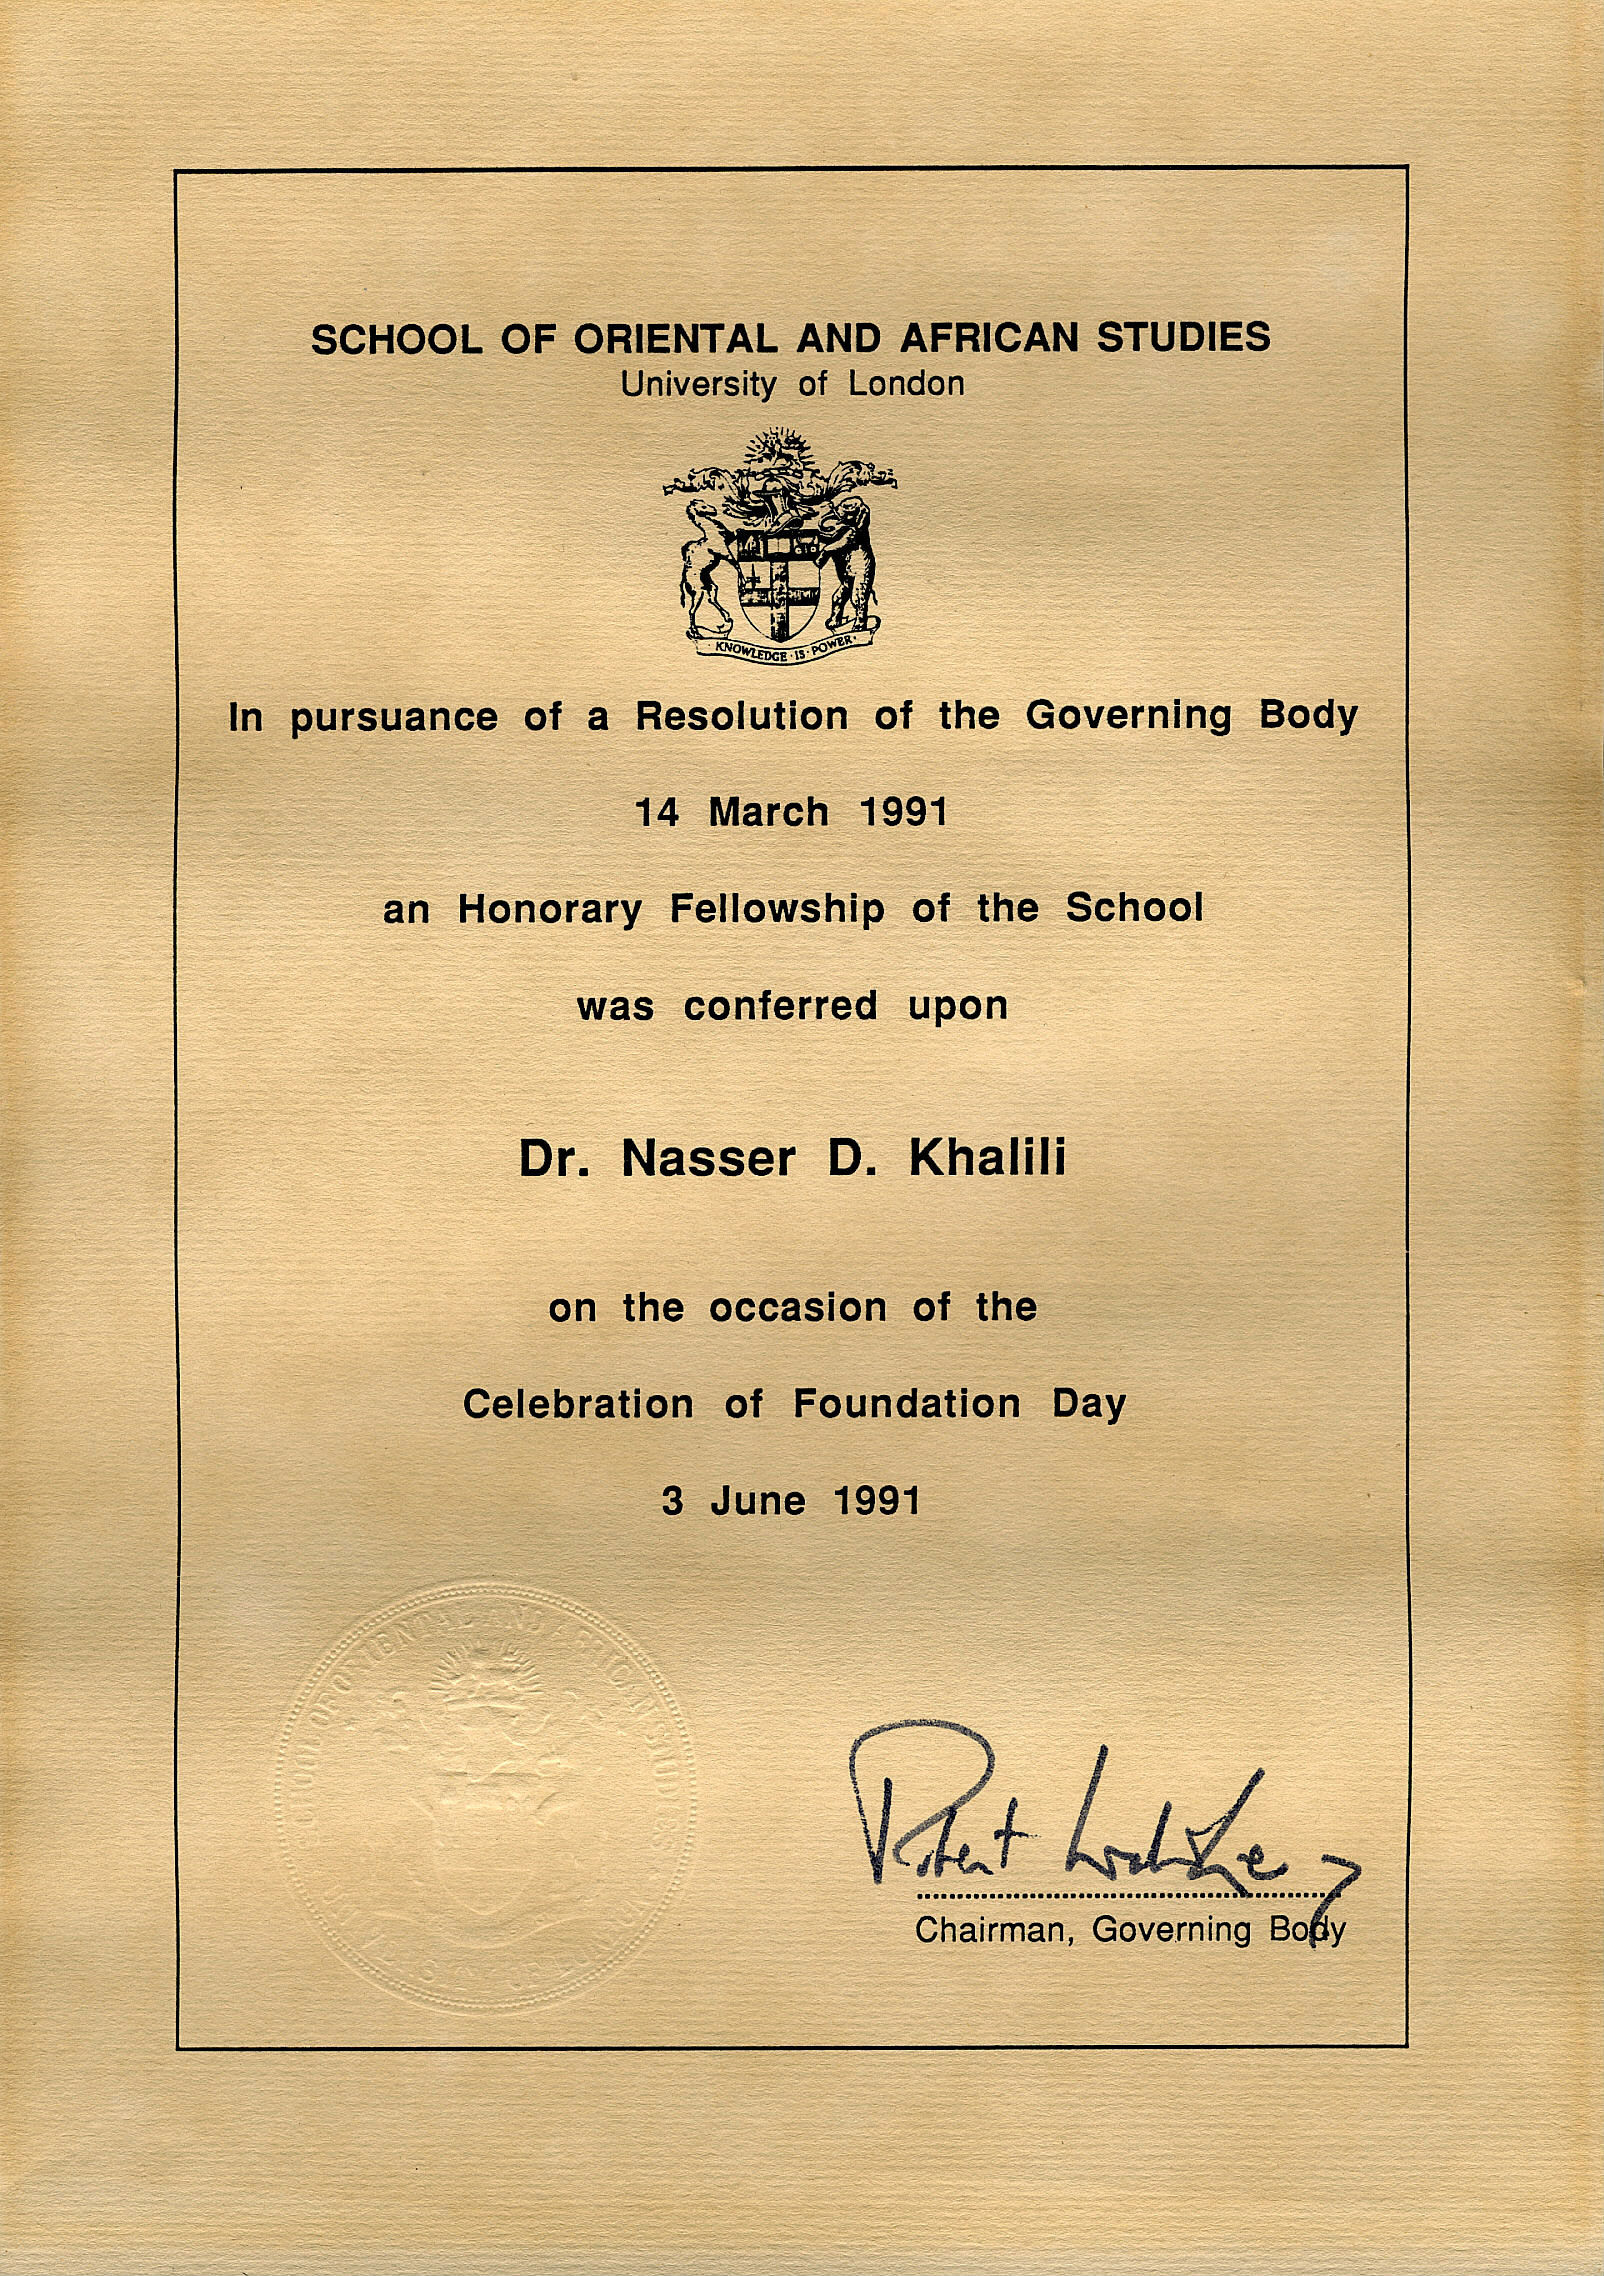 Honorary Fellow, School of Oriental and African Studies, University of London